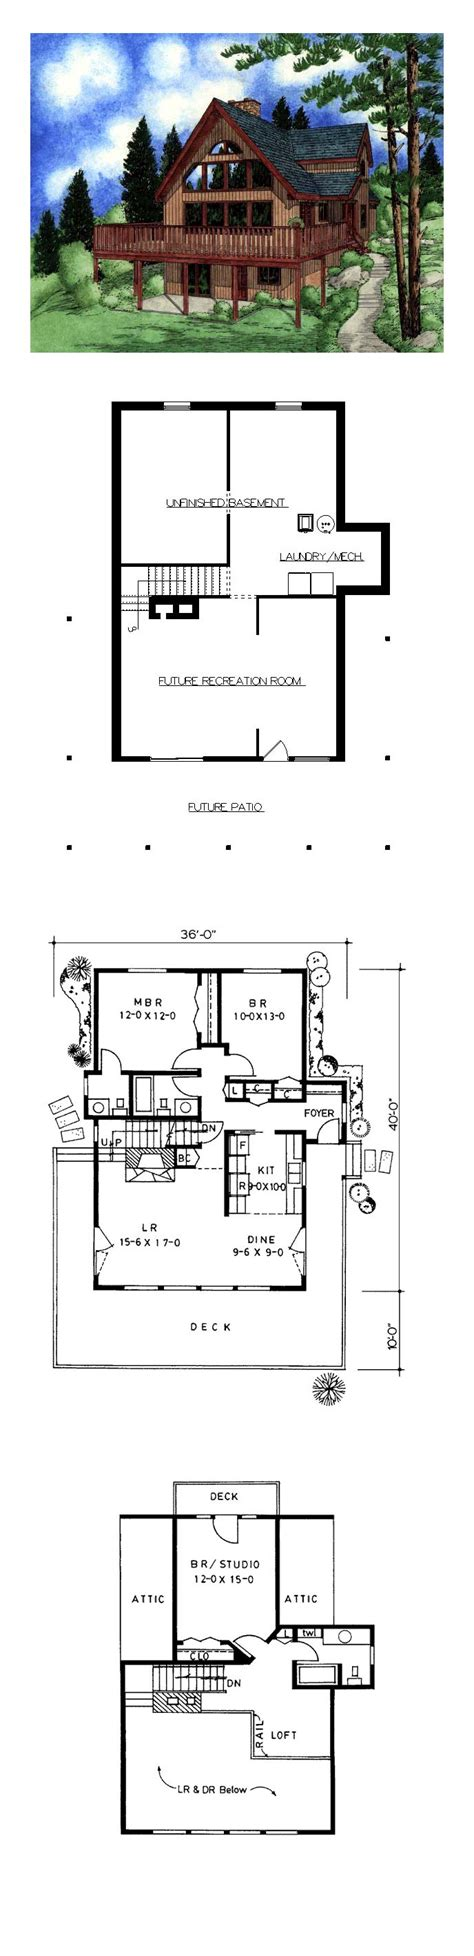 hillside floor plans the 49 best images about hillside home plans on pinterest